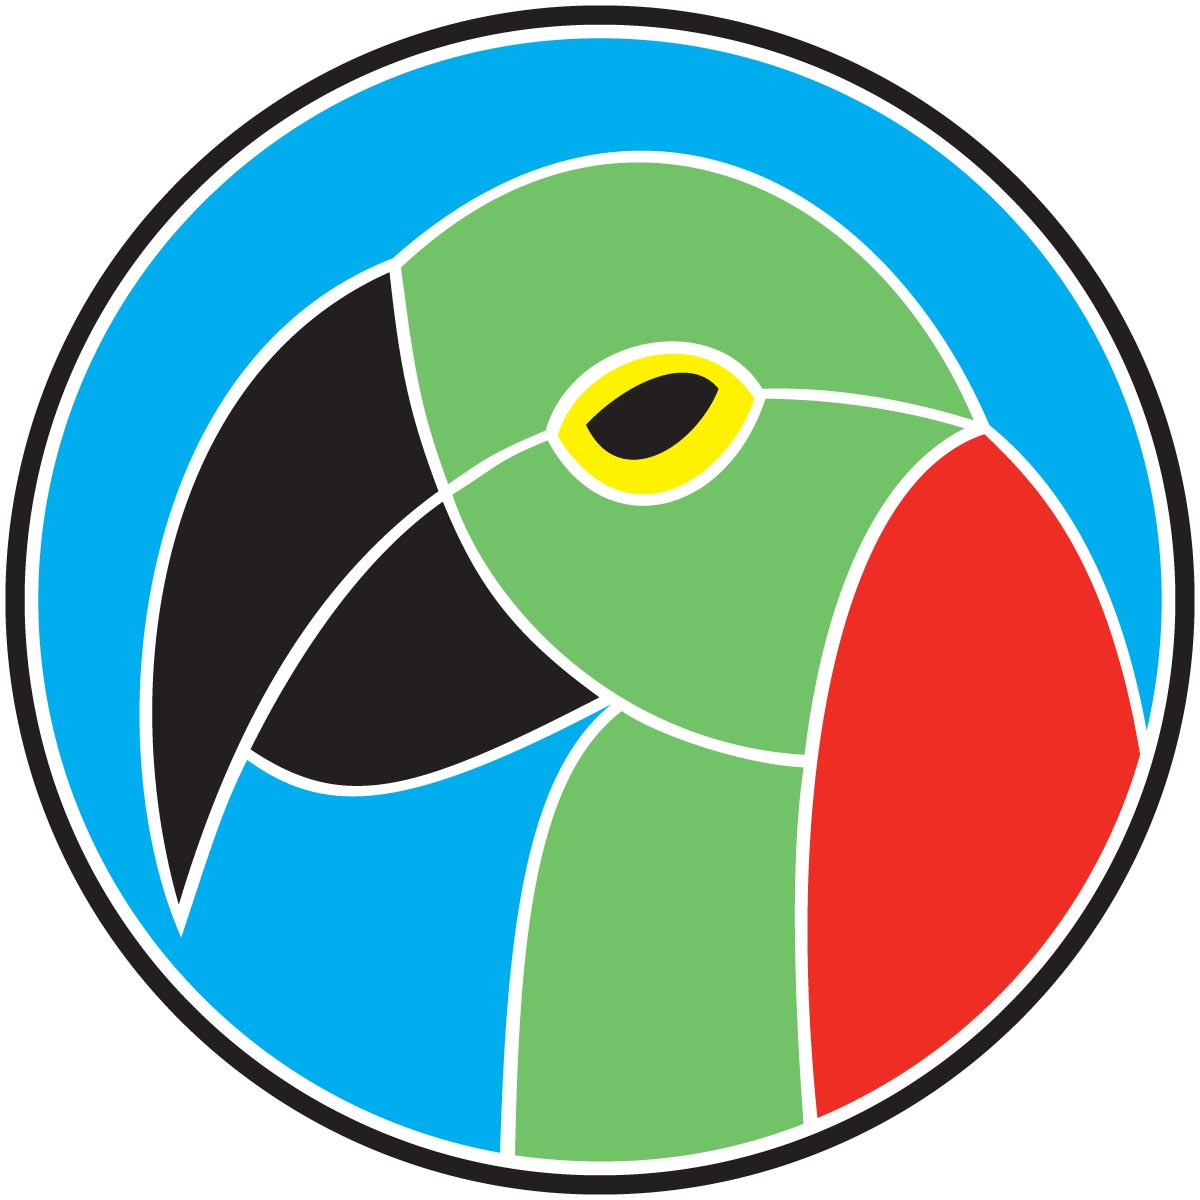 Amd clipart parrot EDID Parrot Manager Interactive Parrot